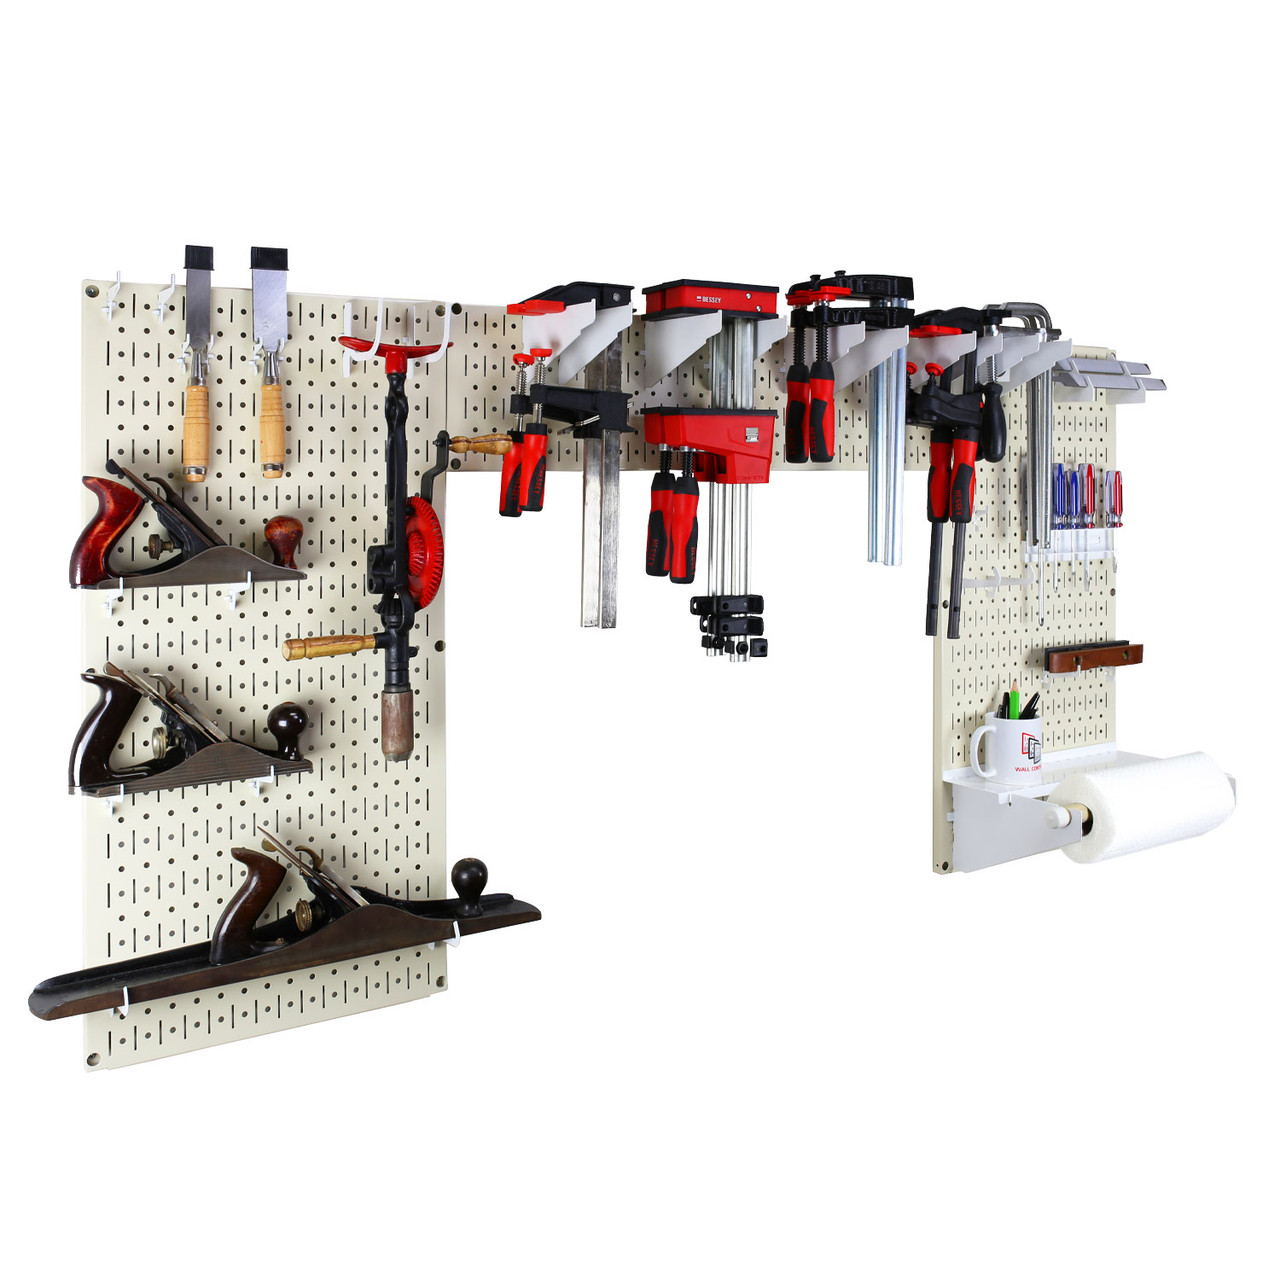 Lazy Guy Diy Maker Woodworking Tool Storage Organizer Set Beige Metal Pegboard With Accessories